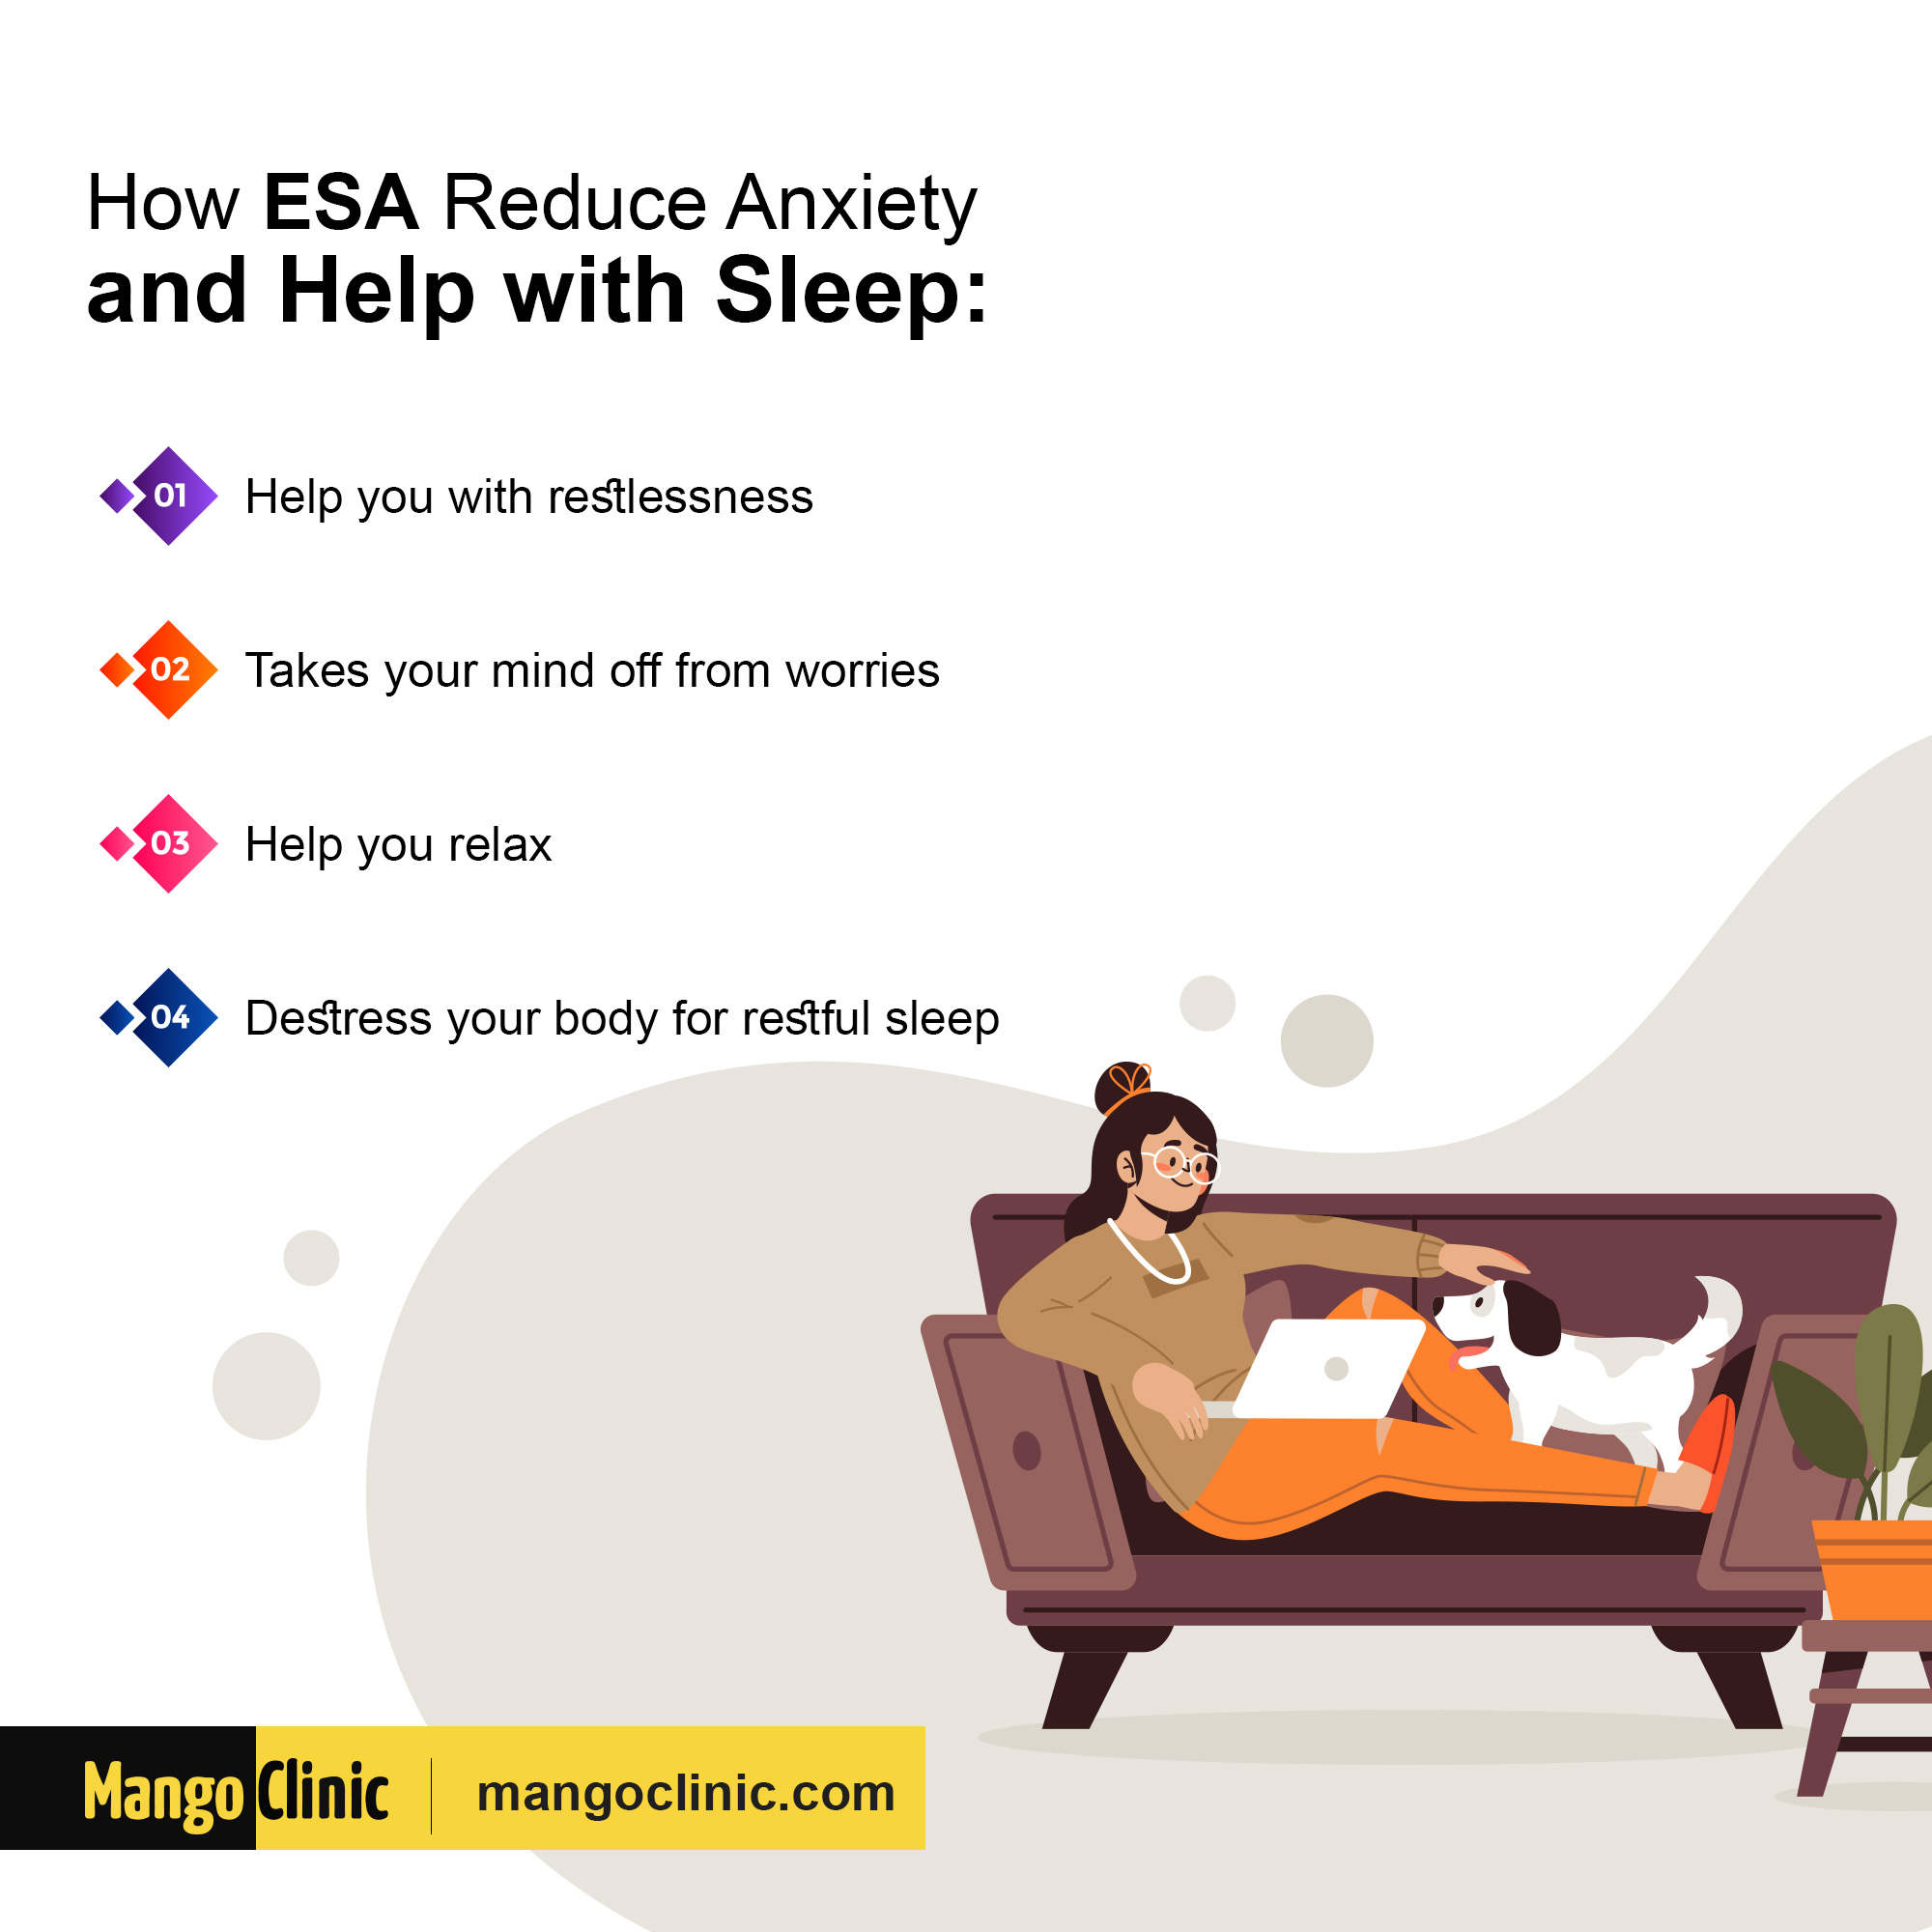 How ESA reduces anxiety